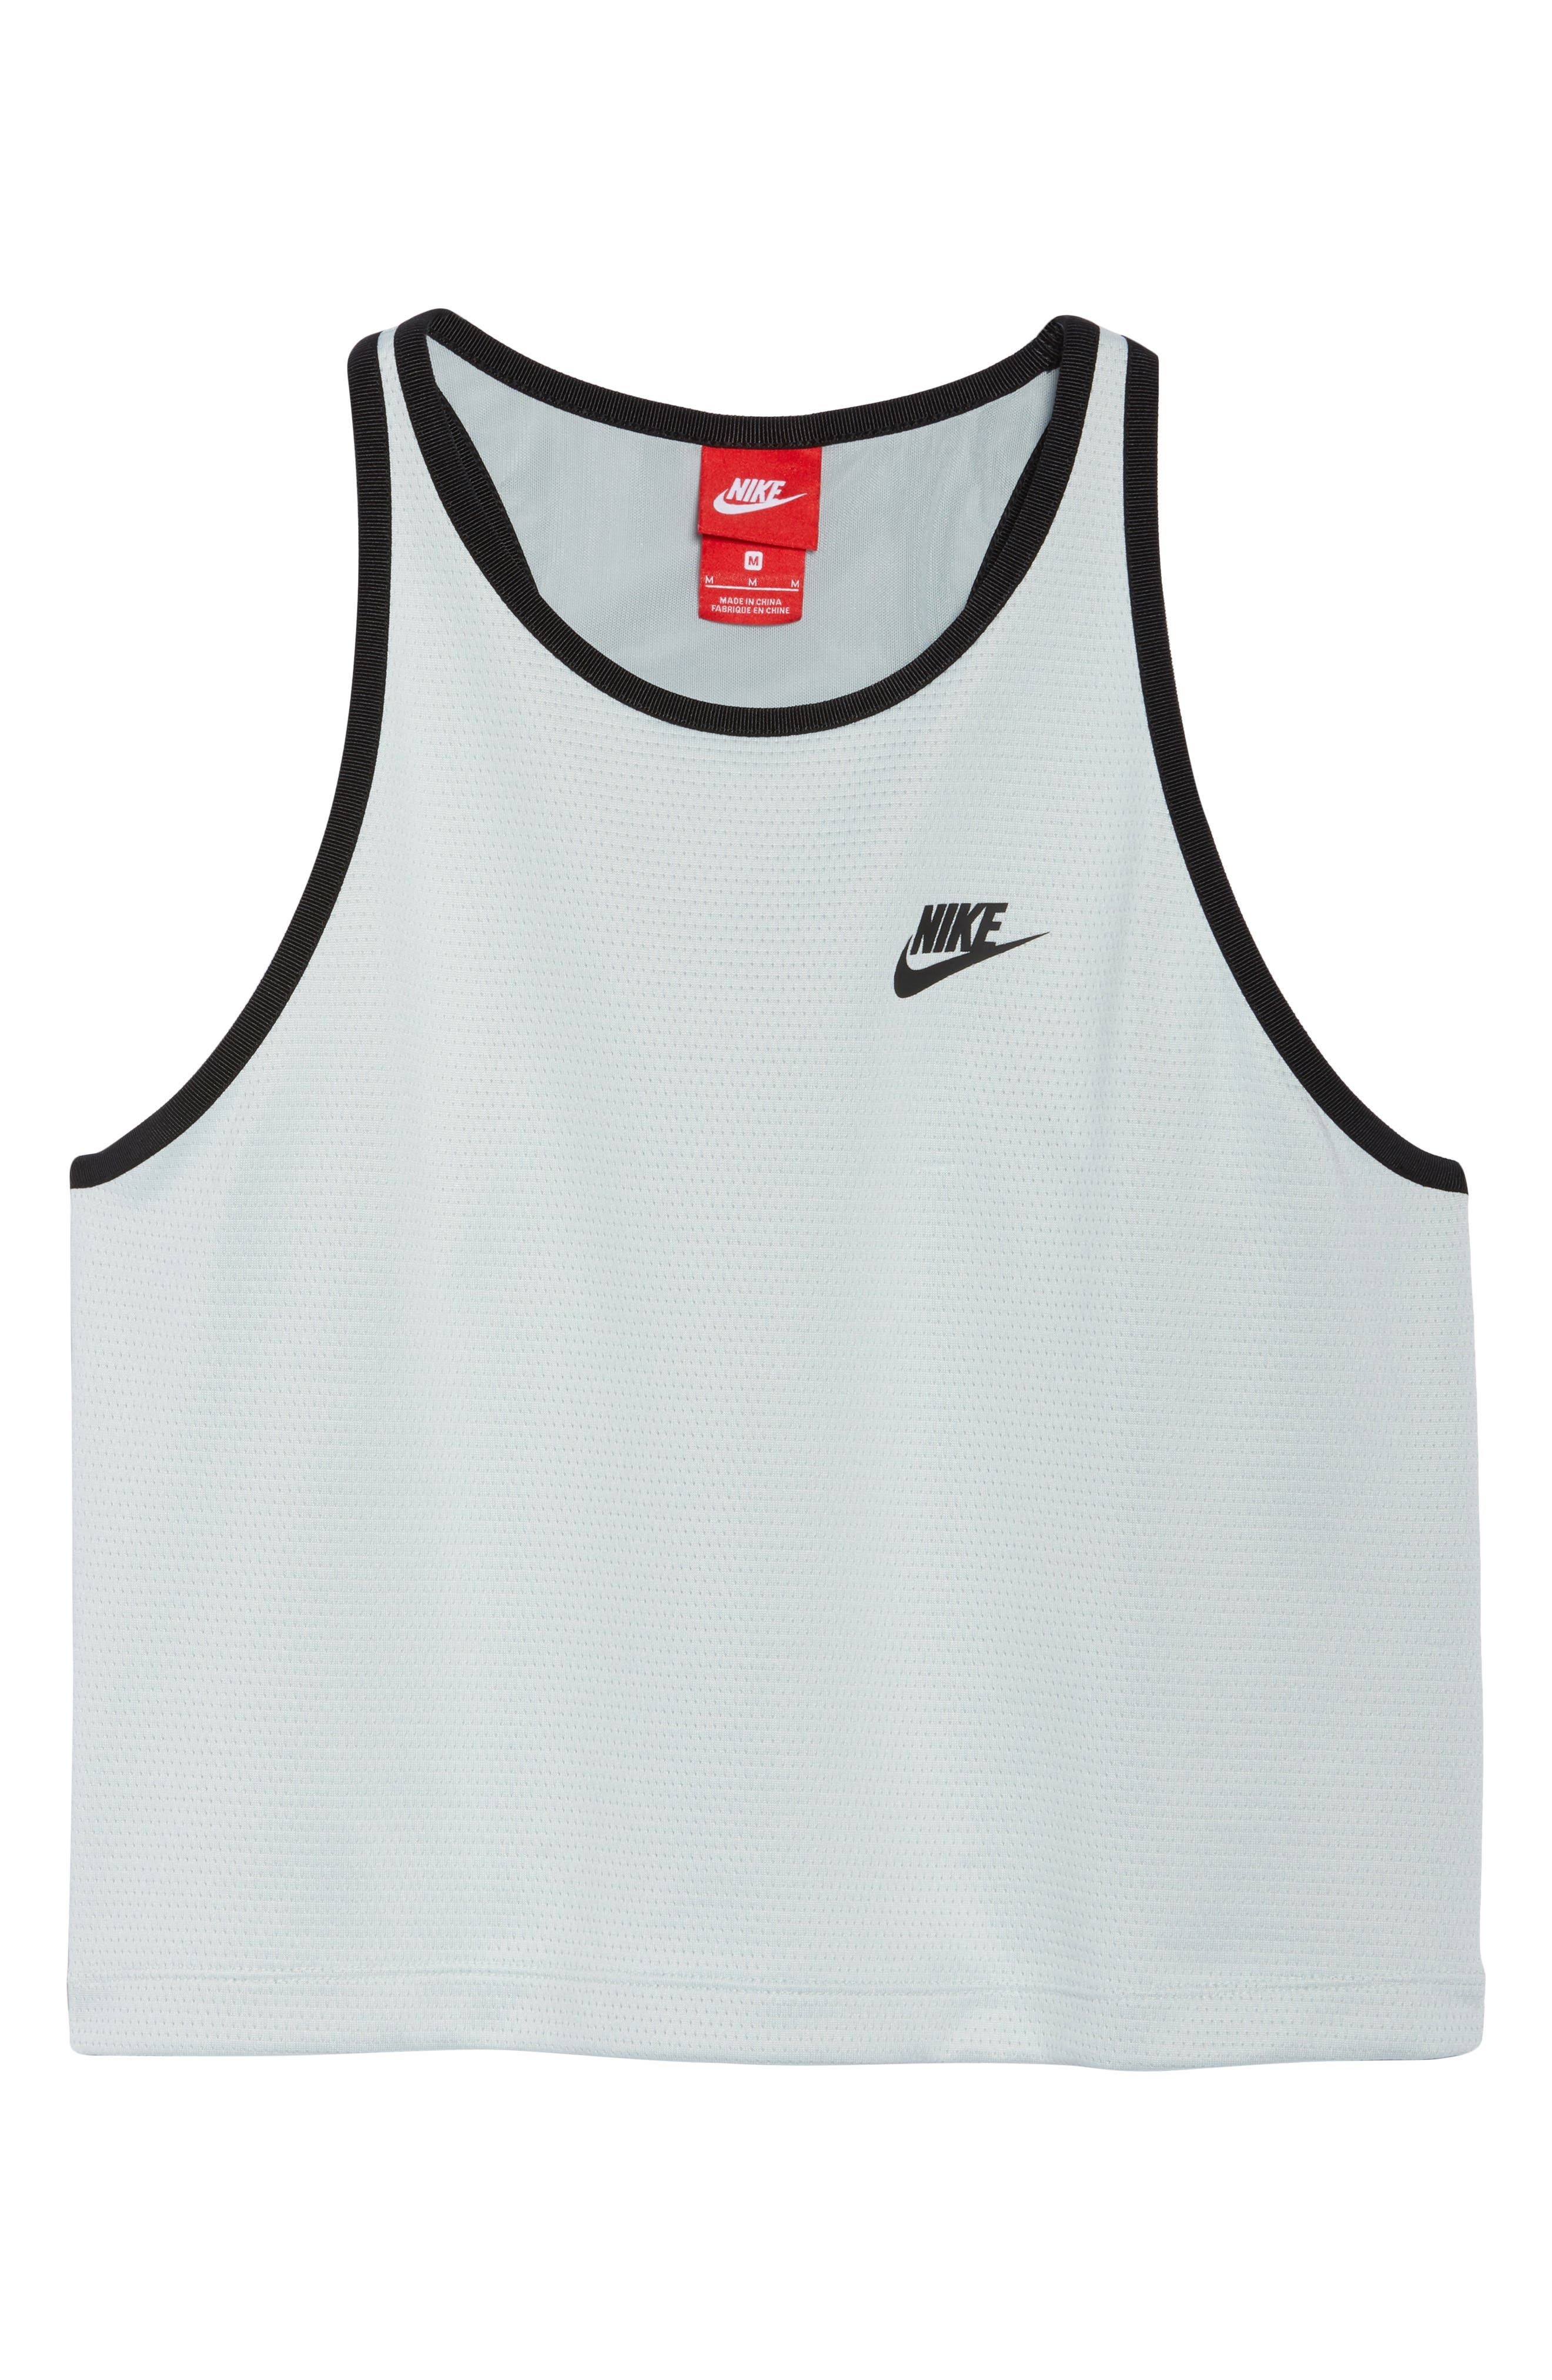 Sportswear Teched Out Tank,                             Alternate thumbnail 7, color,                             022